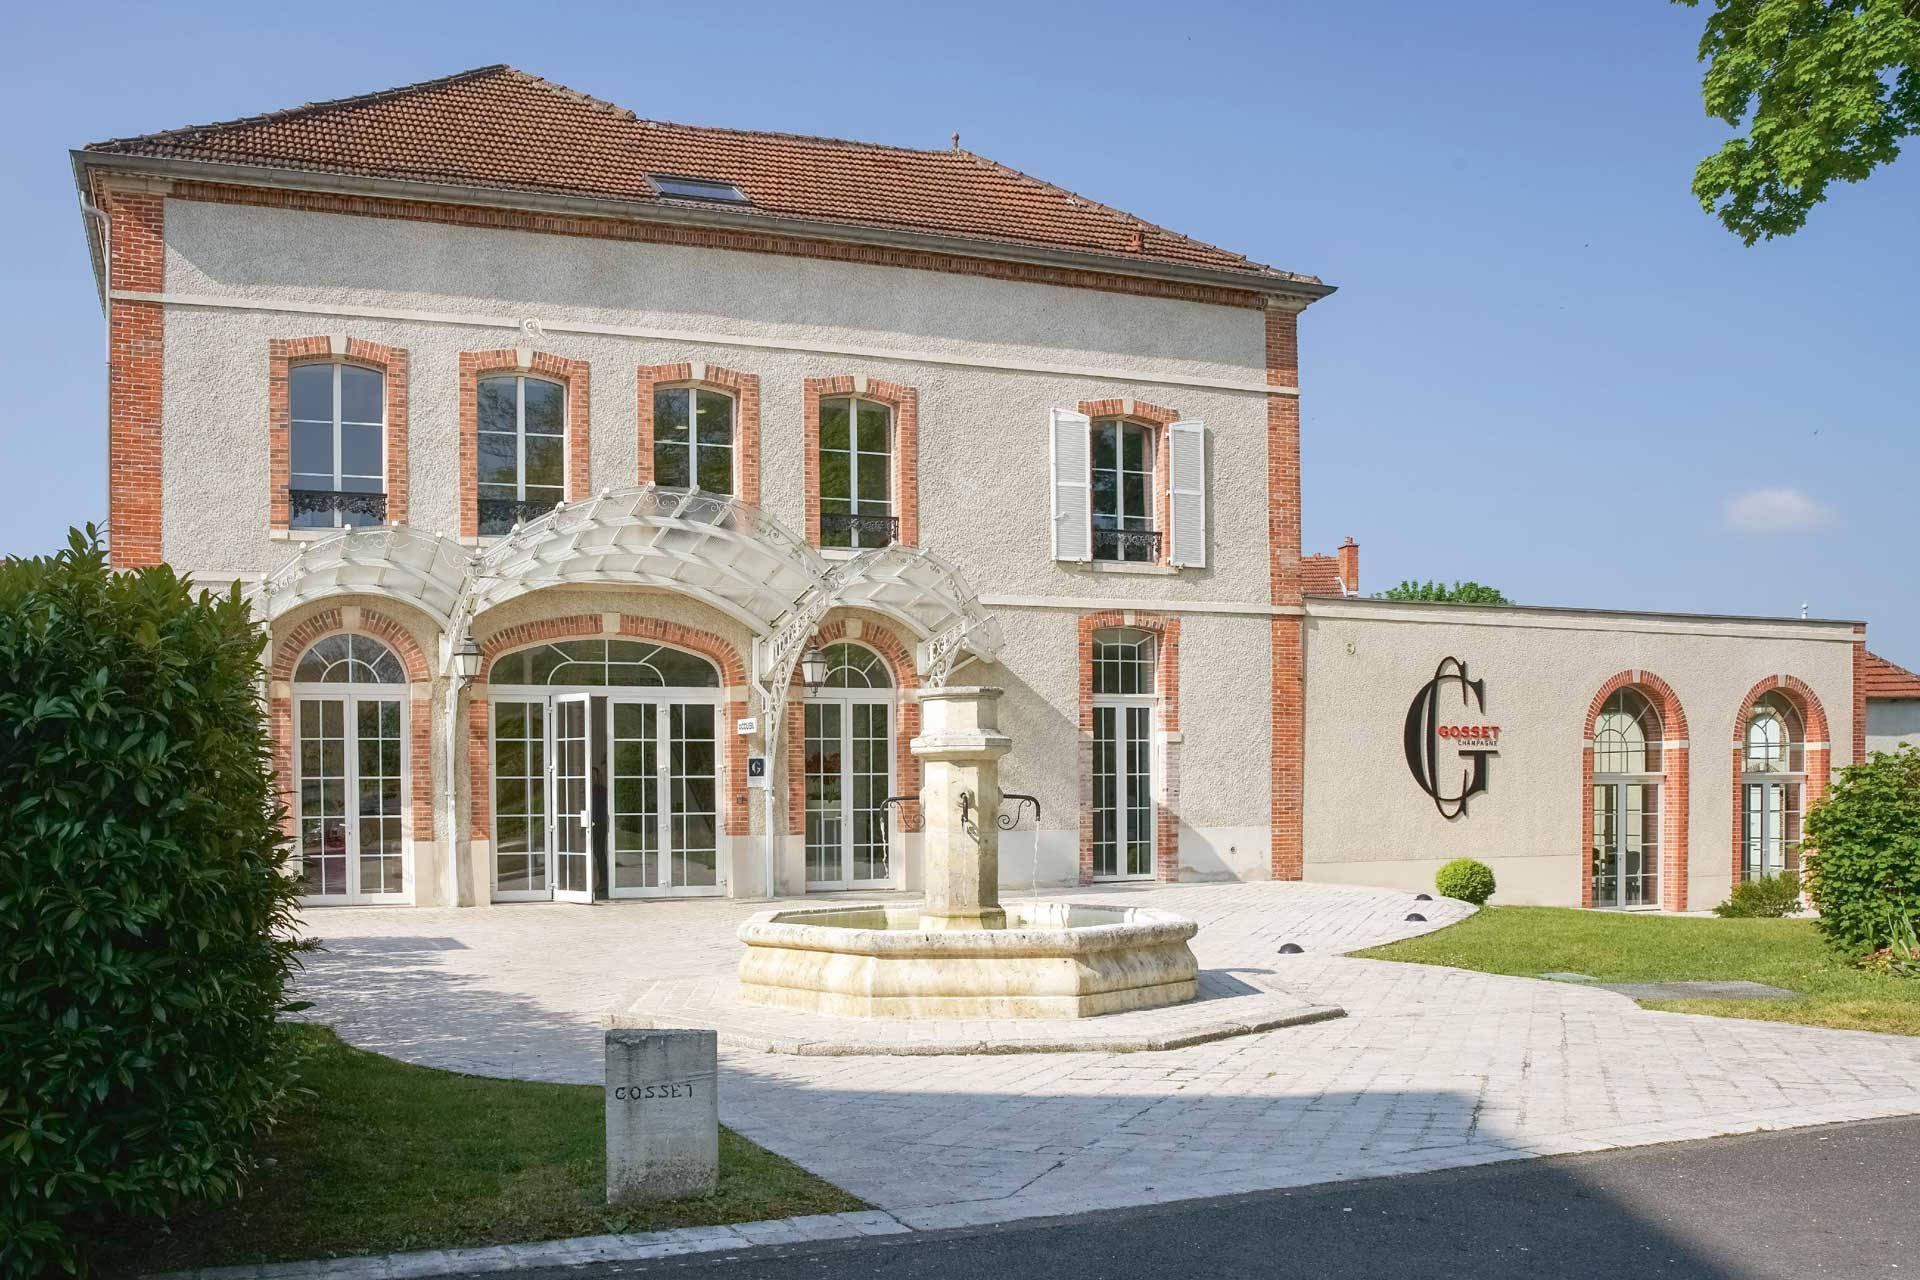 The home of champagne house Gosset